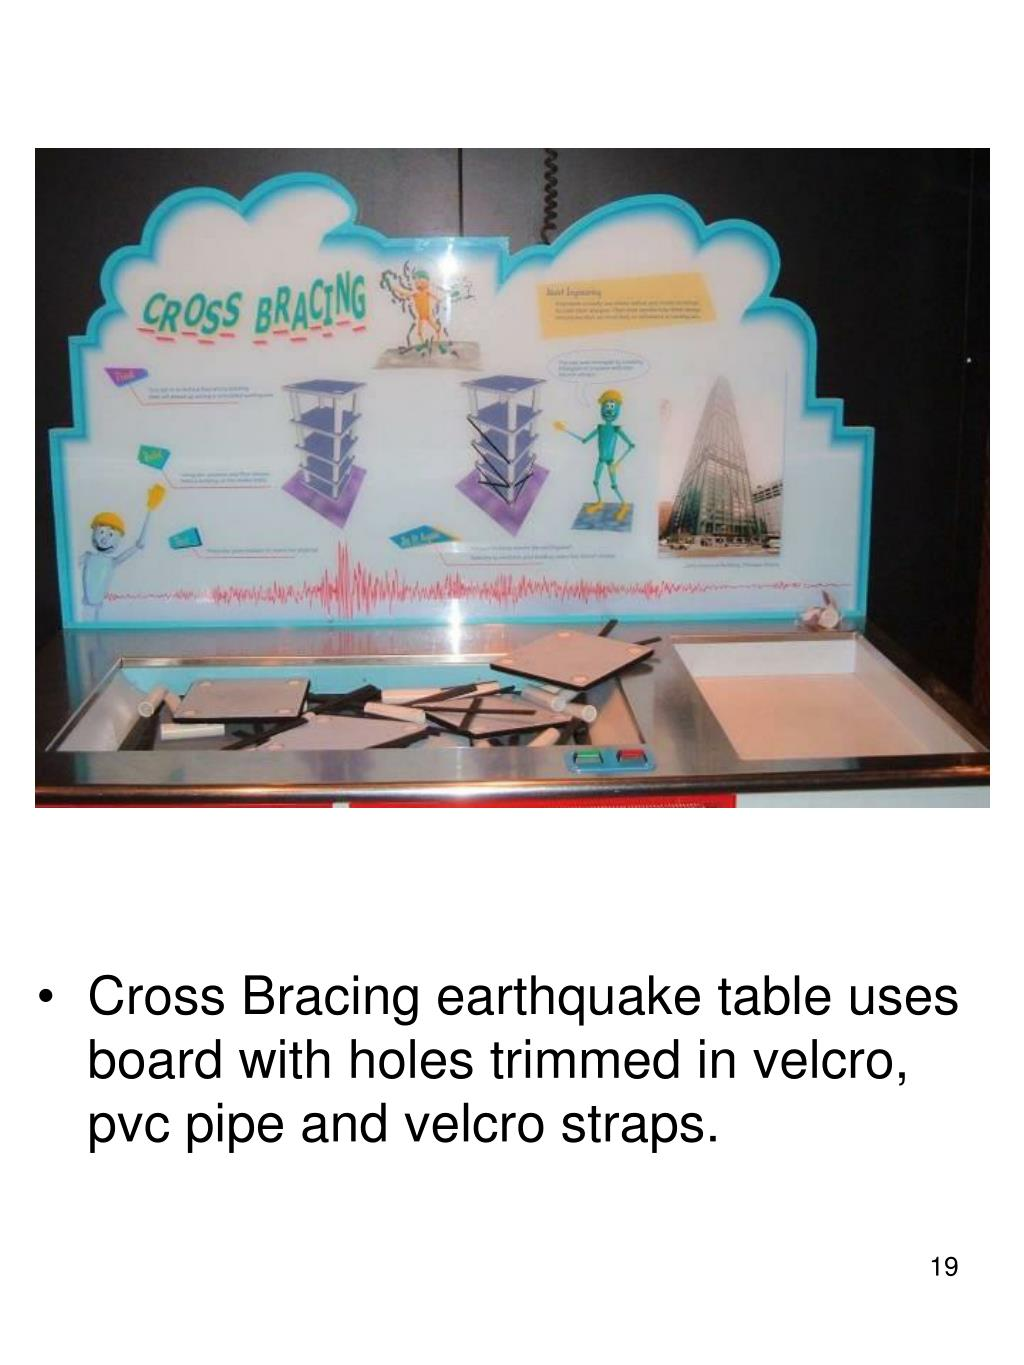 Cross Bracing earthquake table uses board with holes trimmed in velcro, pvc pipe and velcro straps.